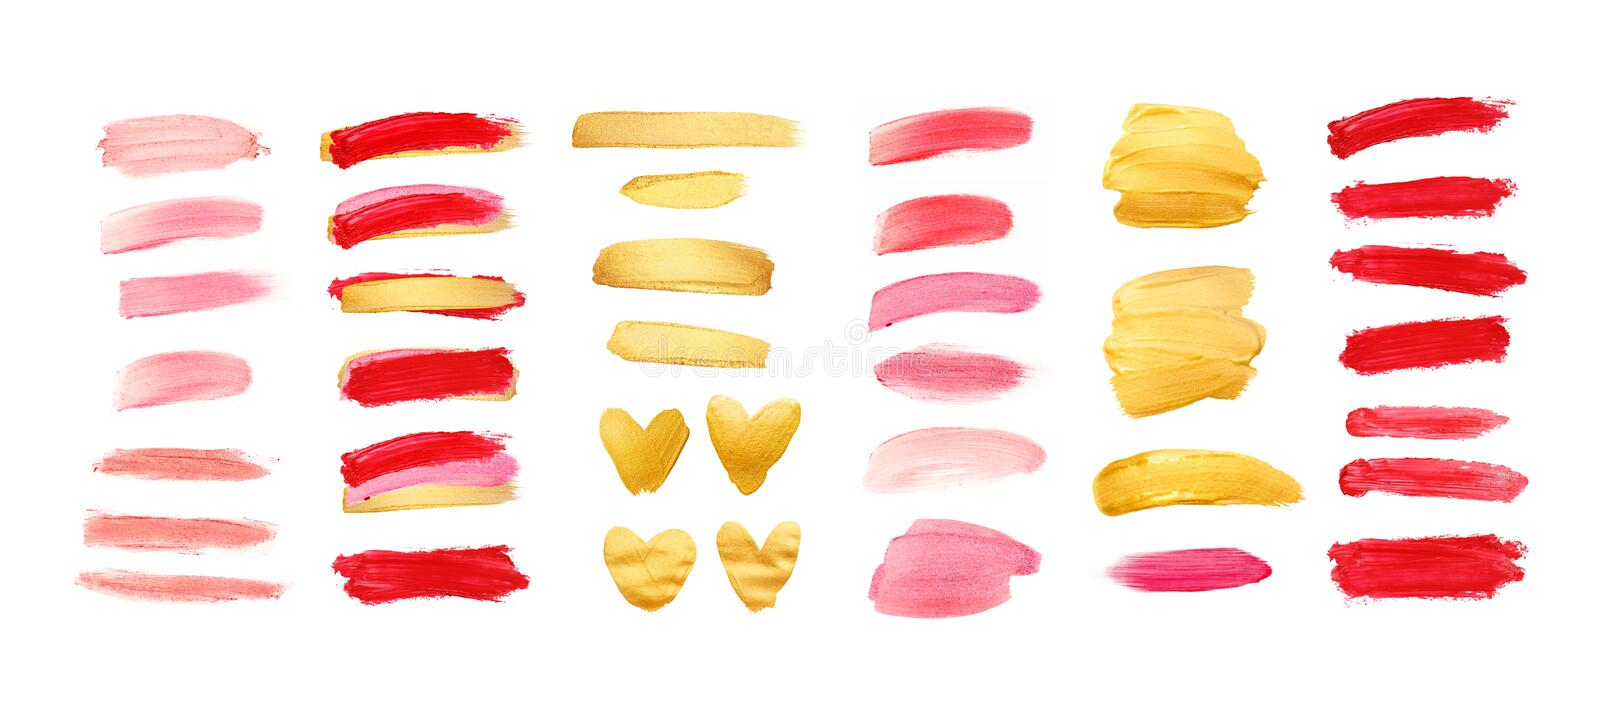 Set of gold, living coral and red strokes isolated on white background. Lipstick bullet smudged. Beautiful textured stock photography